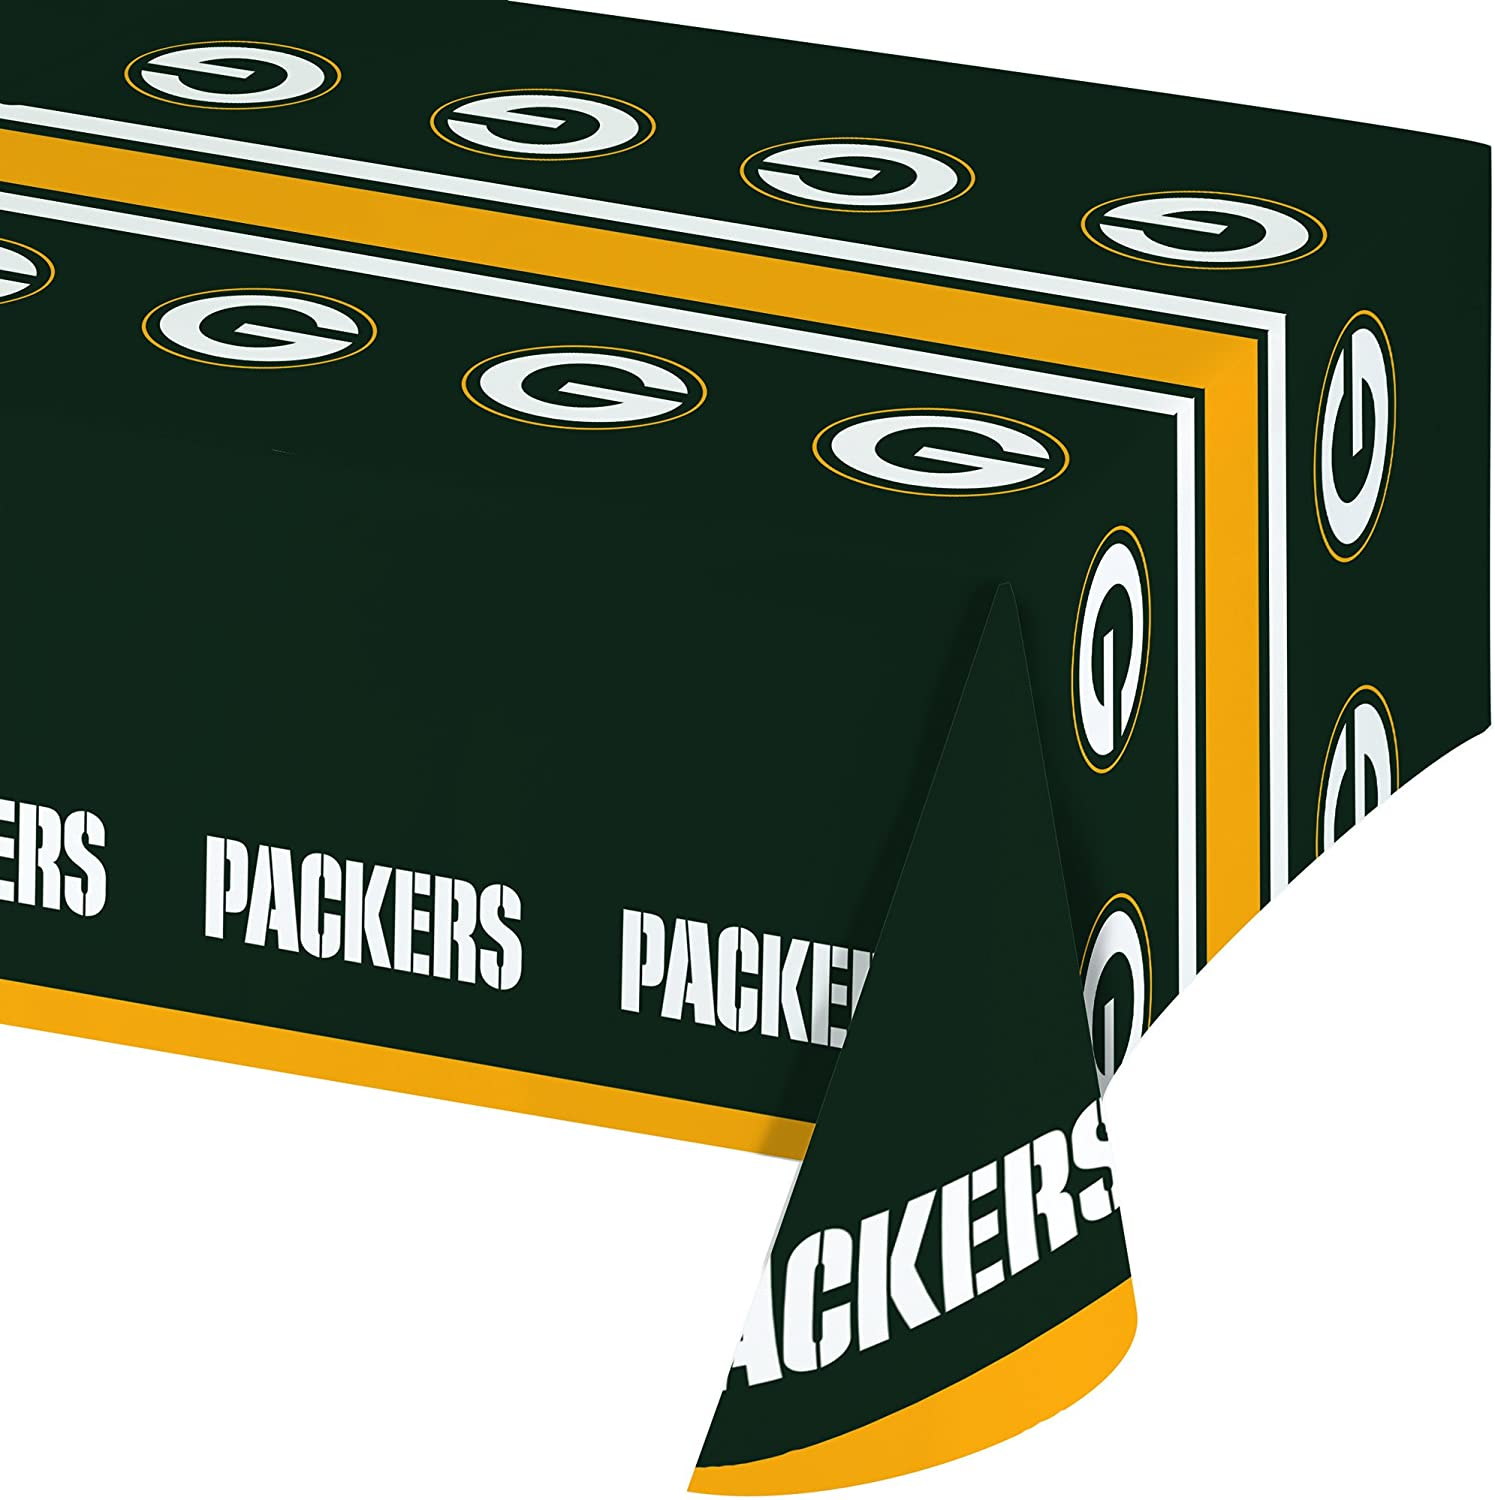 429512 96-Count Creative Converting Officially Licensed NFL Dinner Paper Plates Green Bay Packers